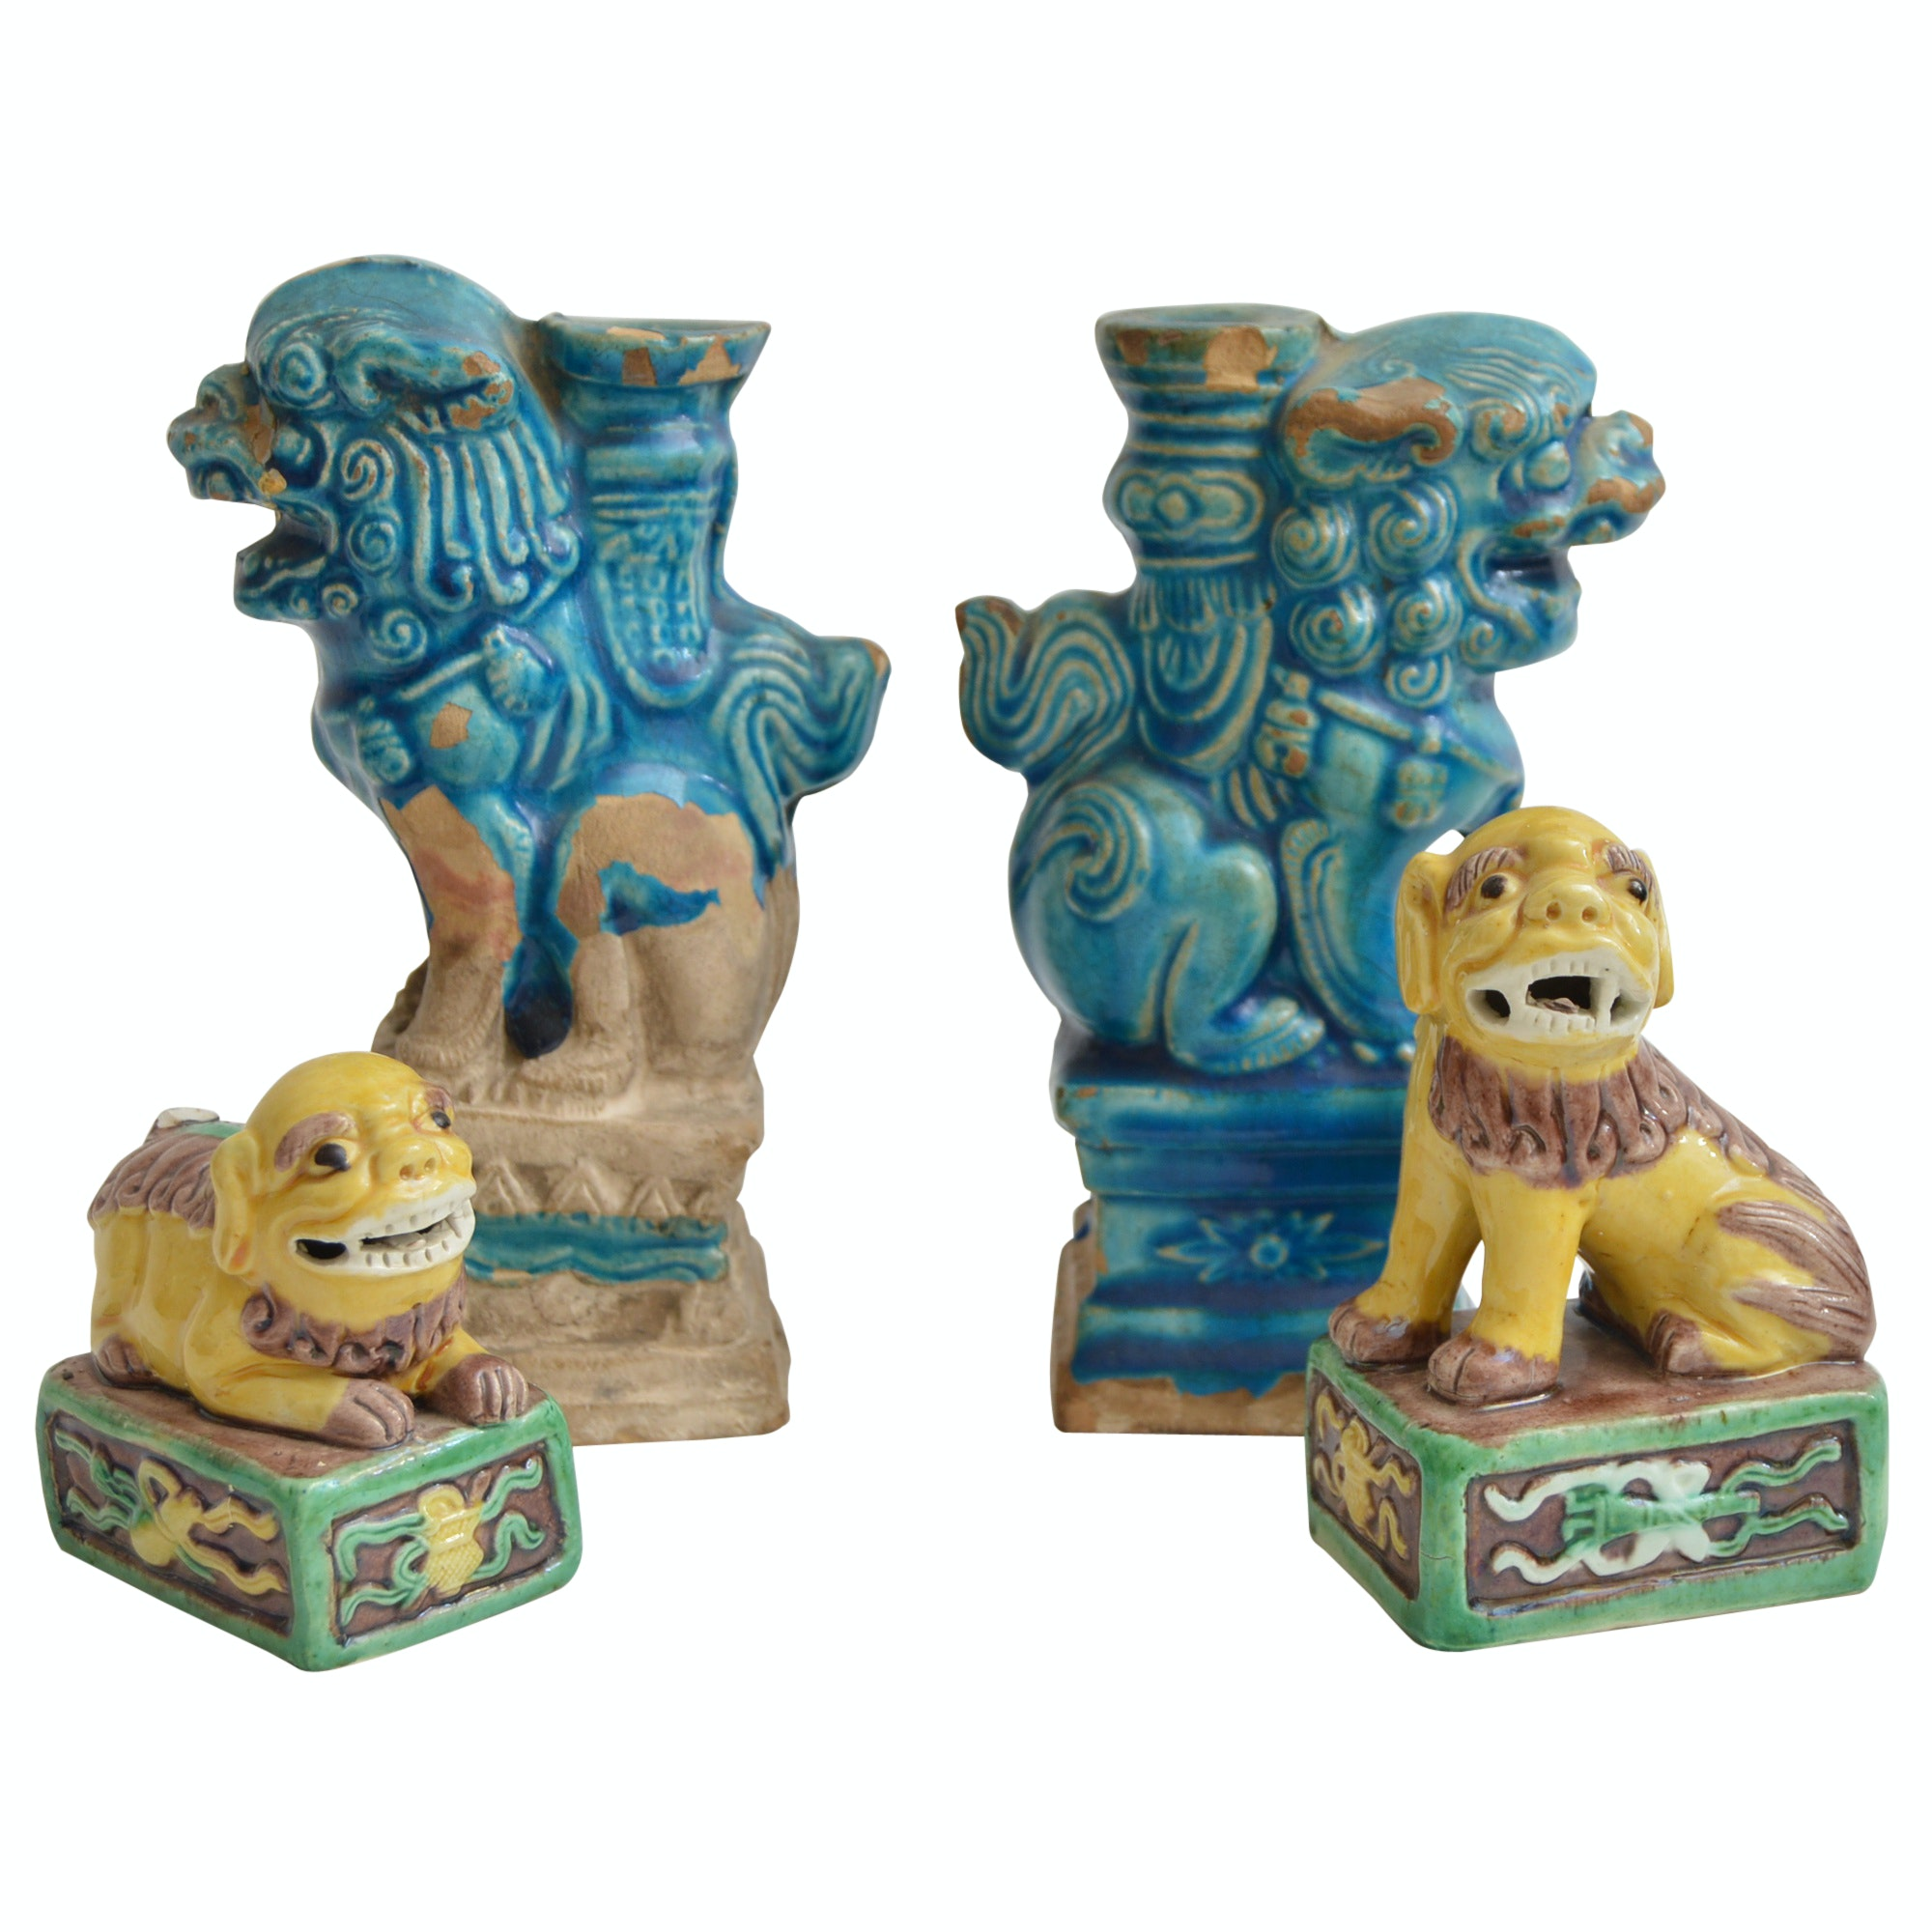 Vintage Chinese Guardian Lion Figurines and Candleholders